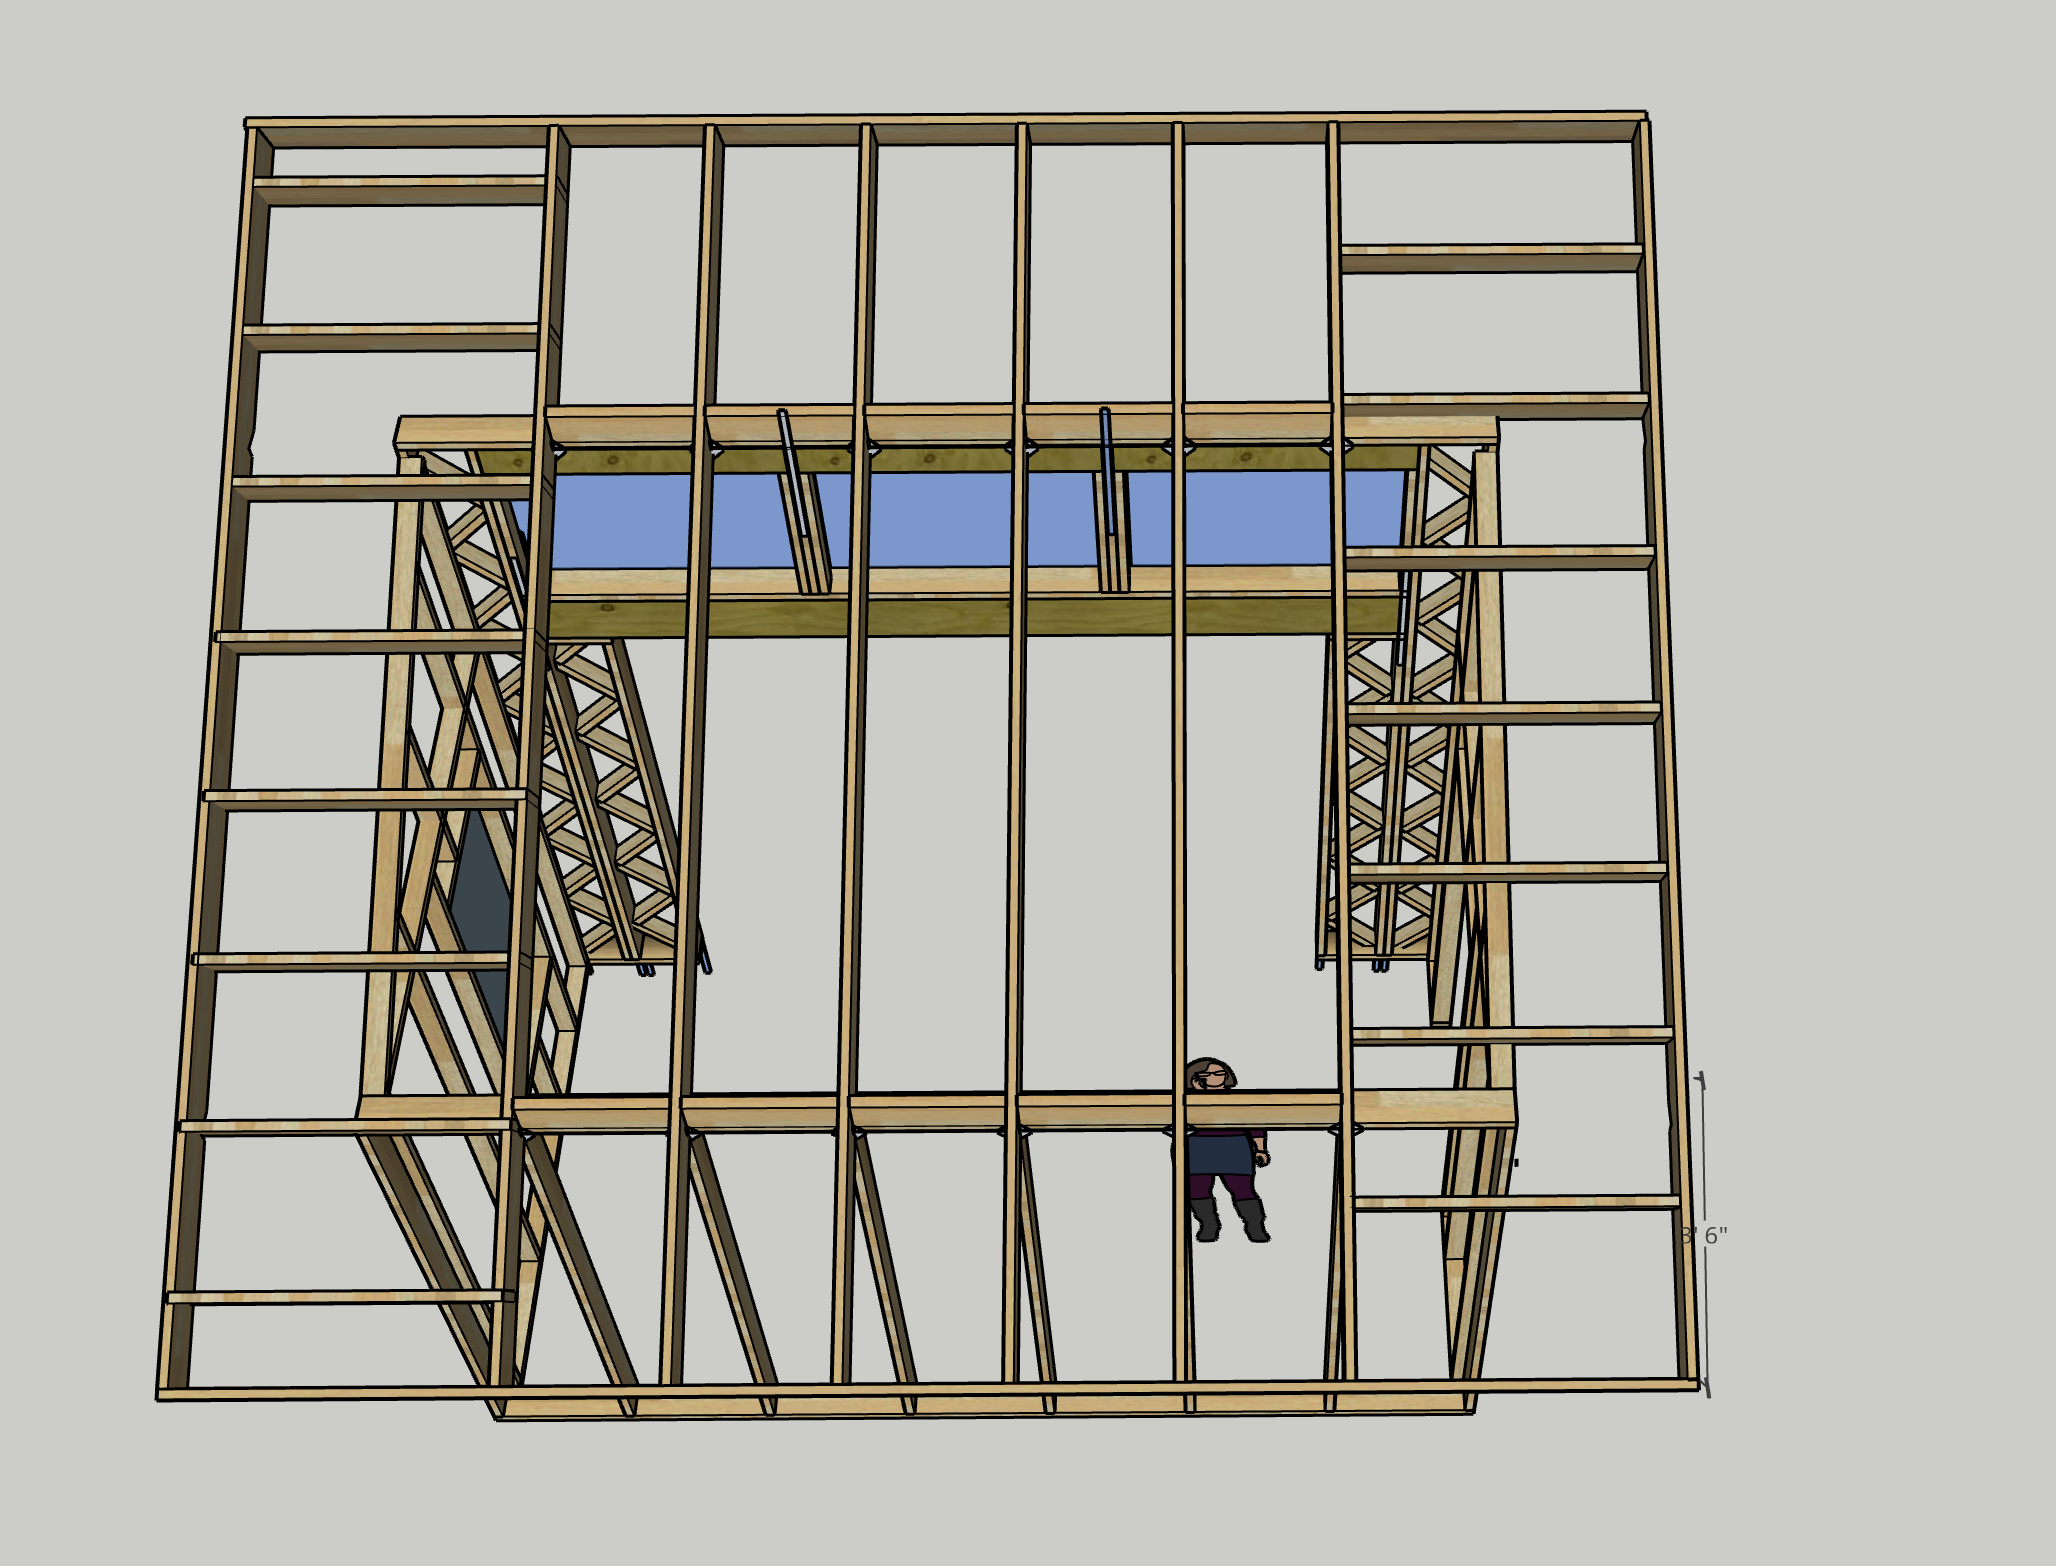 Shed / workshop framing design--is it too ambitious?-screen-shot-2020-04-26-10.20.15-am.png